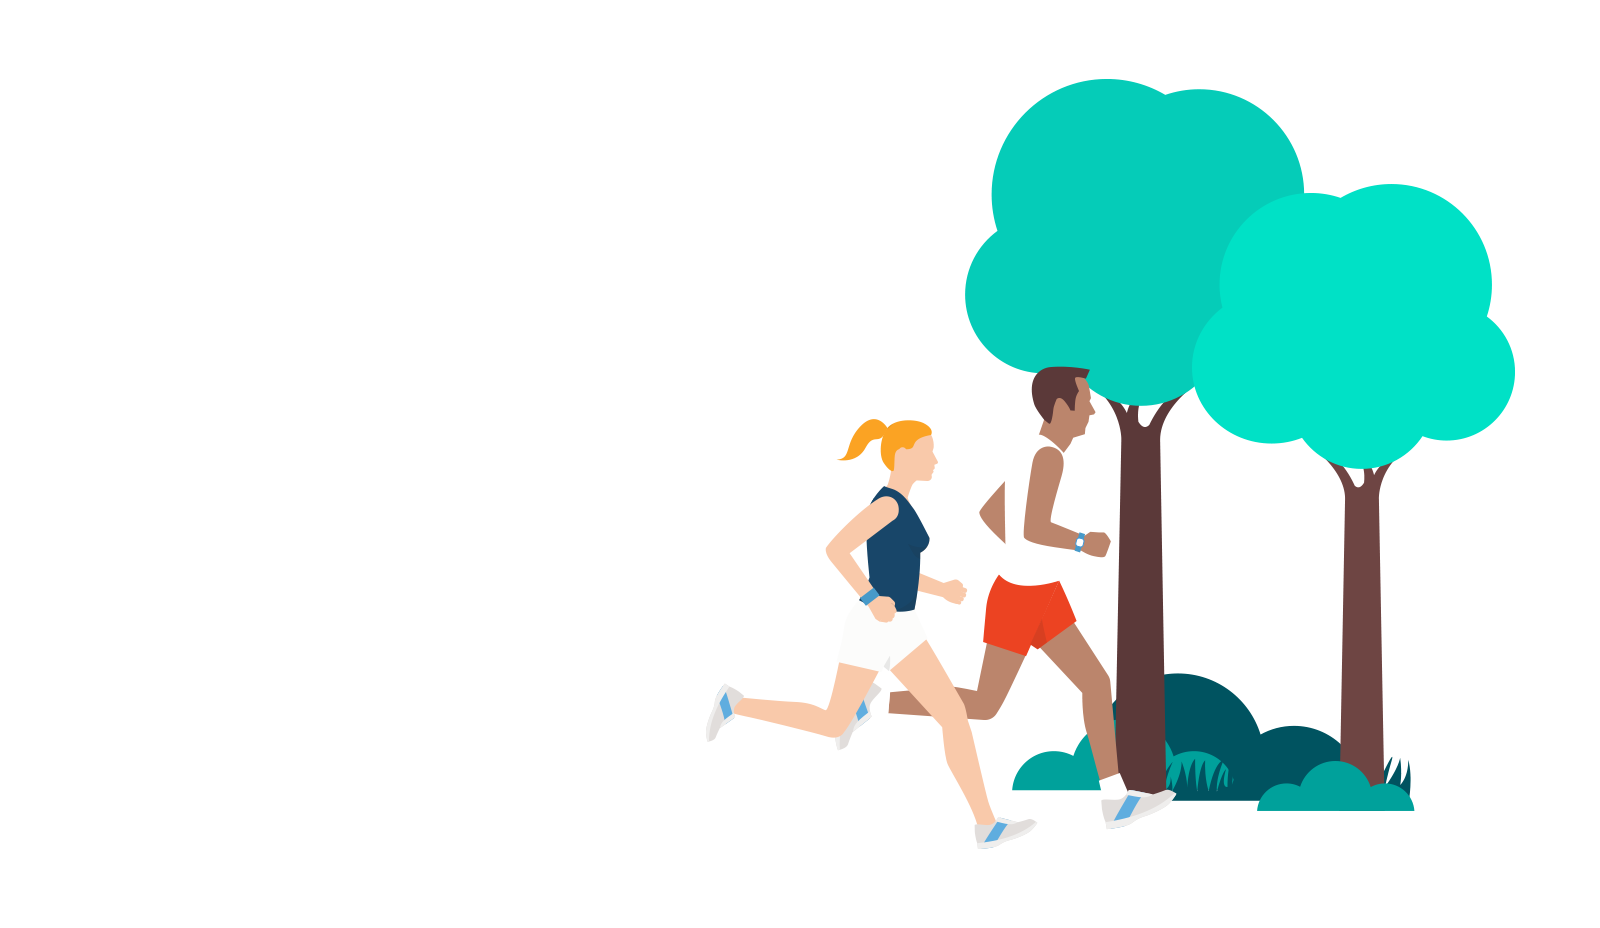 Illustration of people running outdoors